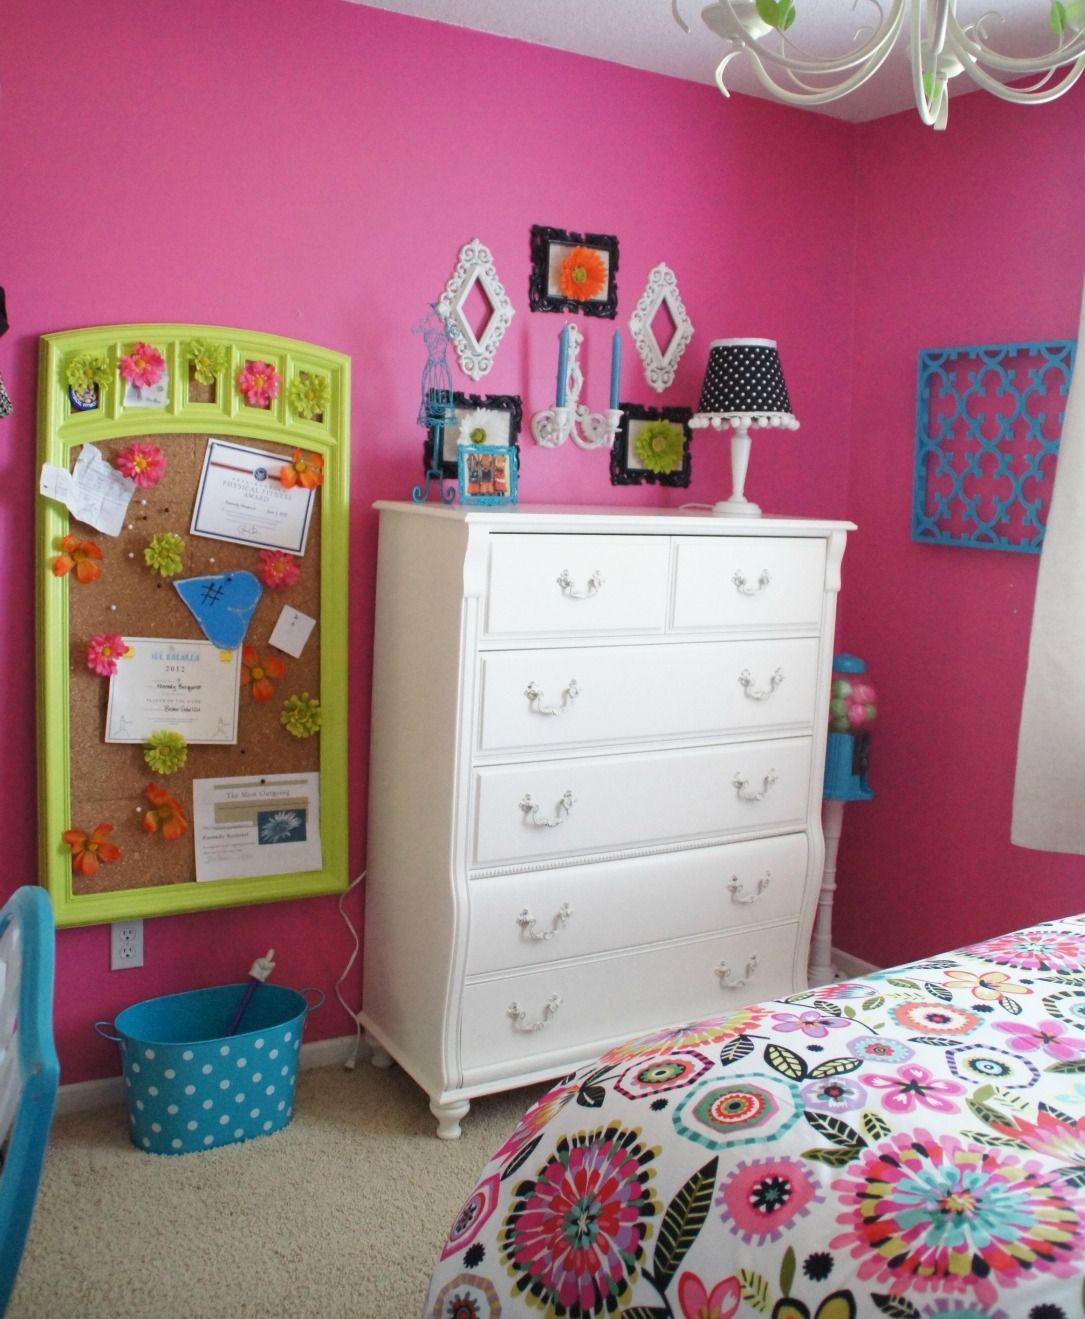 Adorable Tween Bedroom Design Idea For Girls With Fuchsia